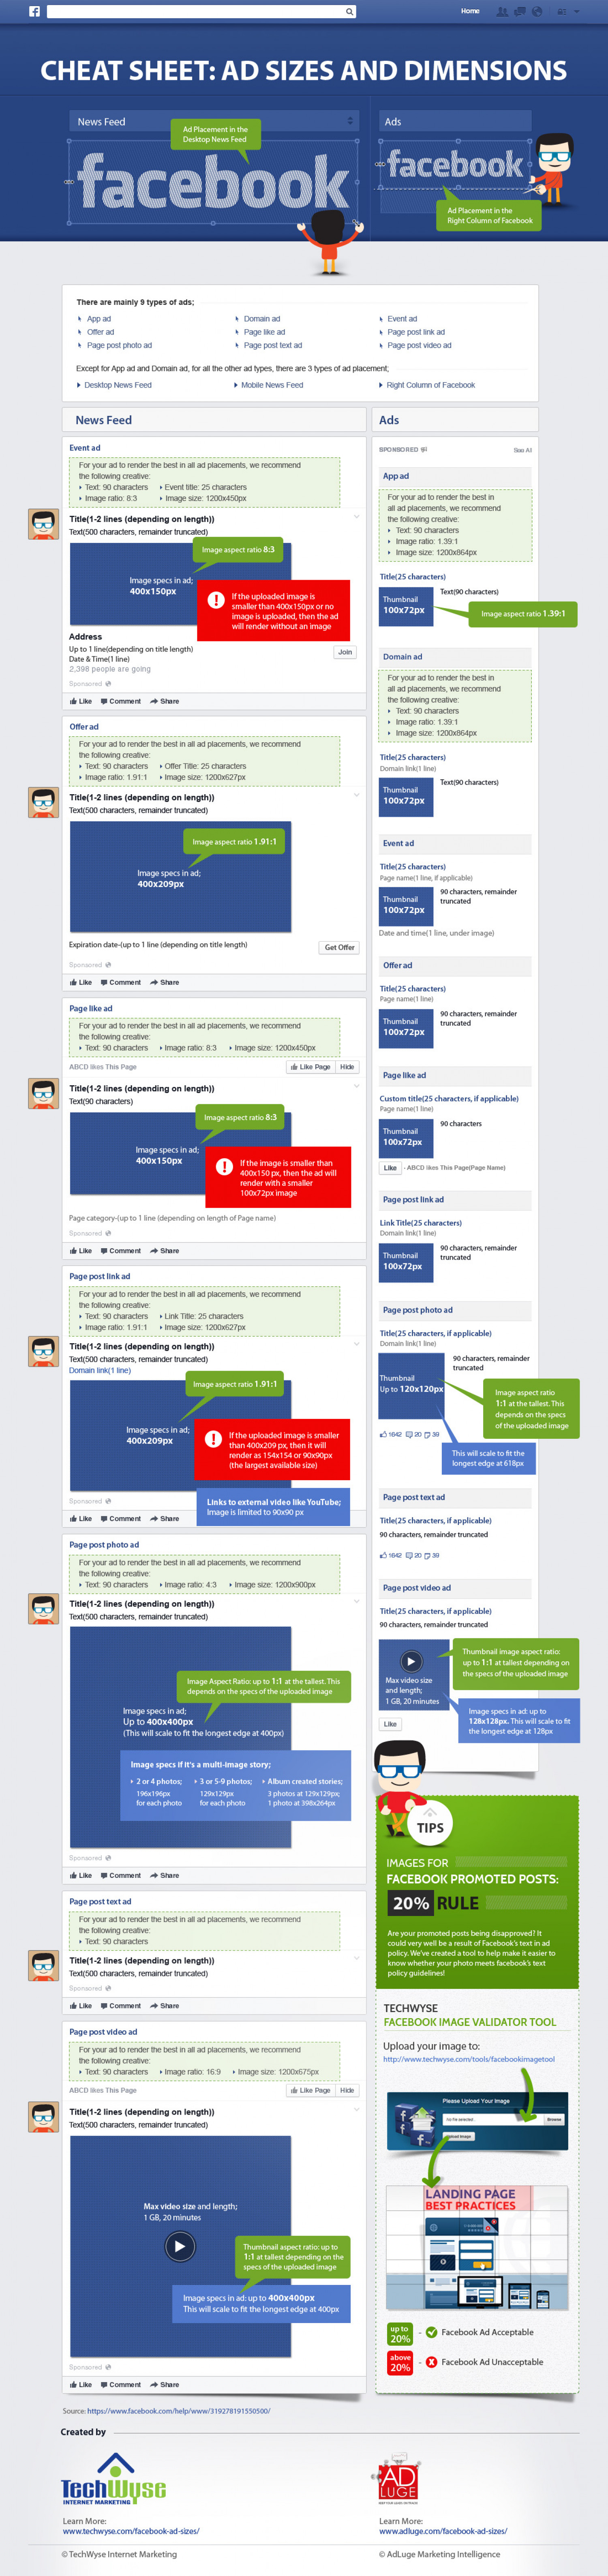 Facebook Ad Specifications and Dimensions Infographic